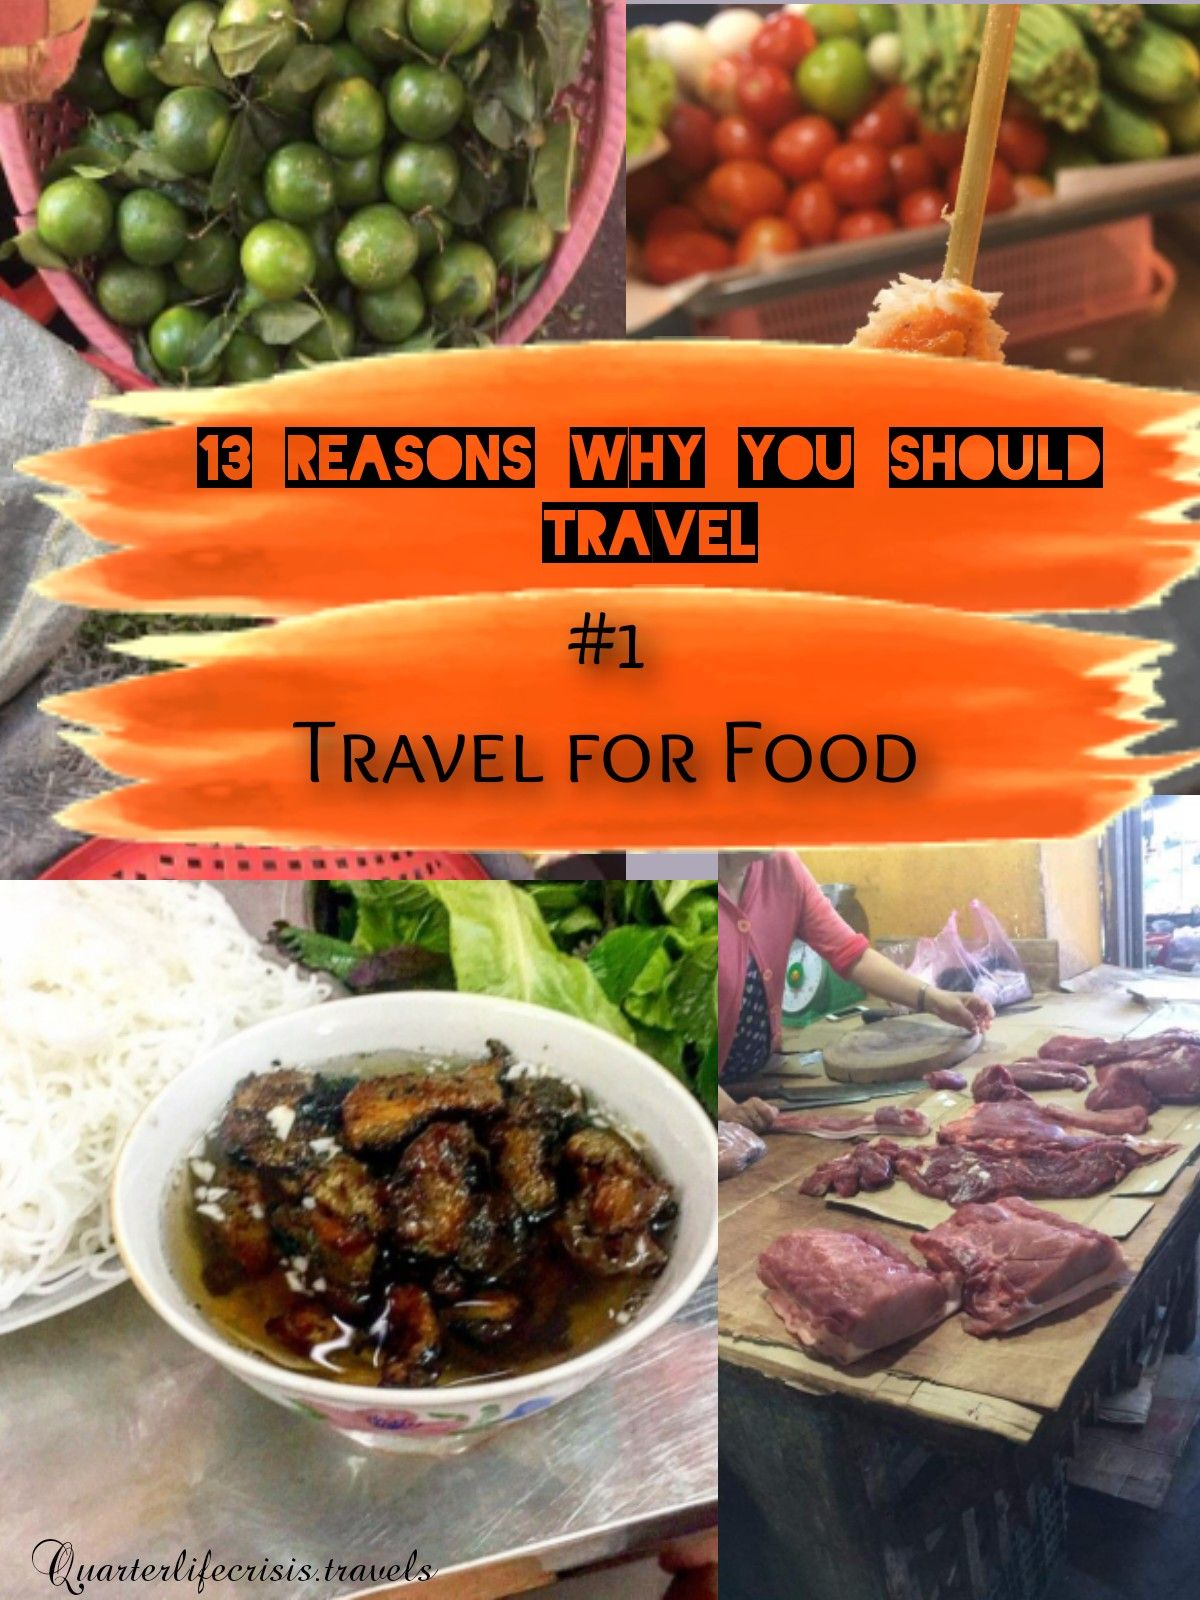 13 Reasons Why You Should Travel In 2020 Great British Food Food Tourism Eating Competition